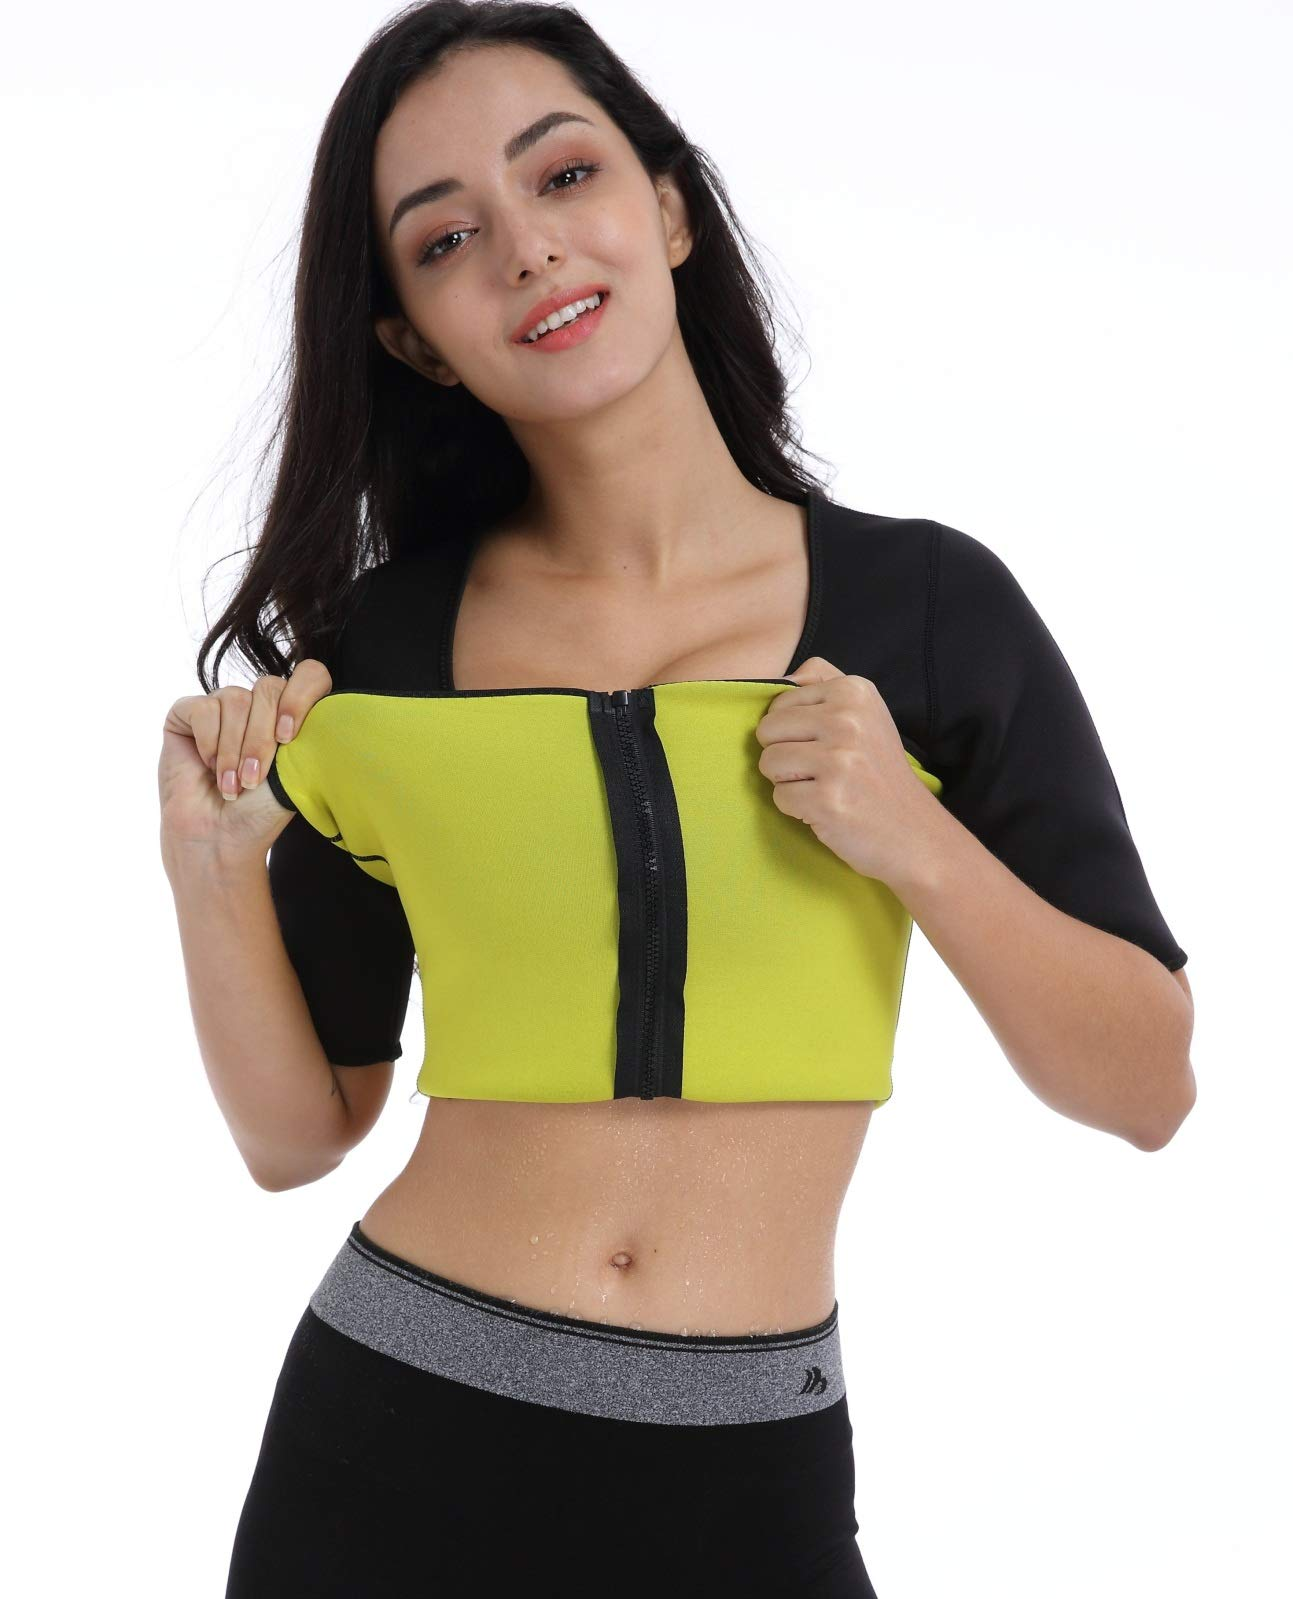 Stomach Fat Burner Valentina Womens Hot Thermo Body Shaper Arm /& Abdominal Trainer Best SCR Bodysuit for Weight Loss Workout Sweat Sauna Suit 4XL Slimming Long Sleeve Shirt Black S